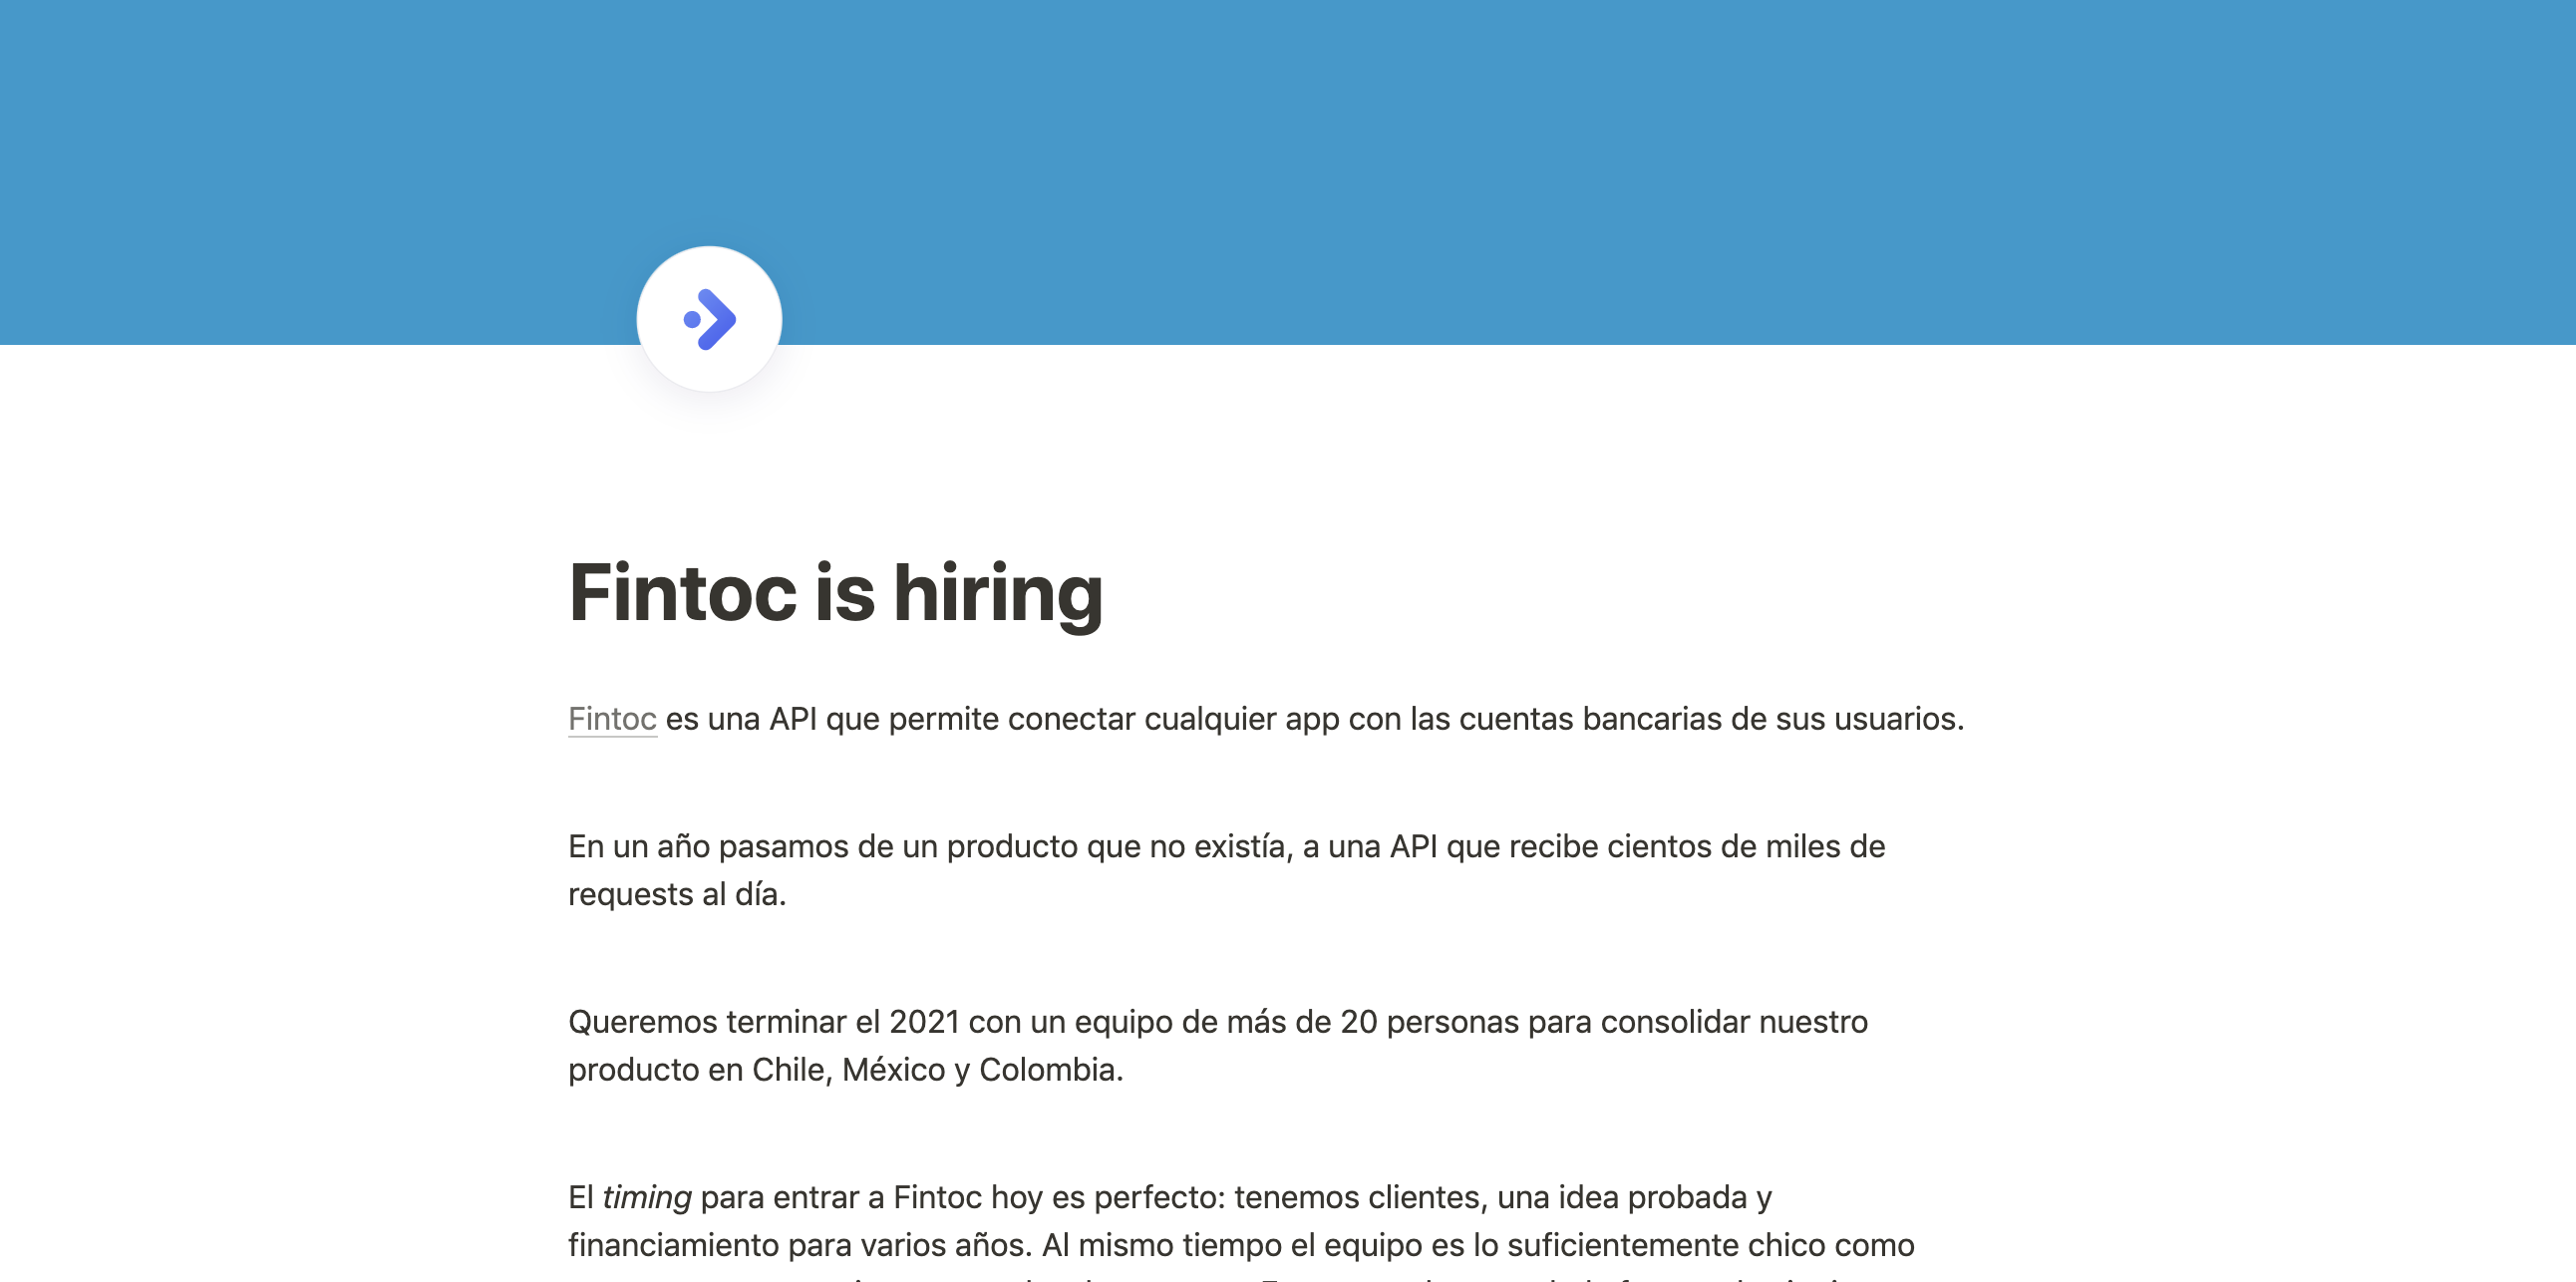 Fintoc is hiring!